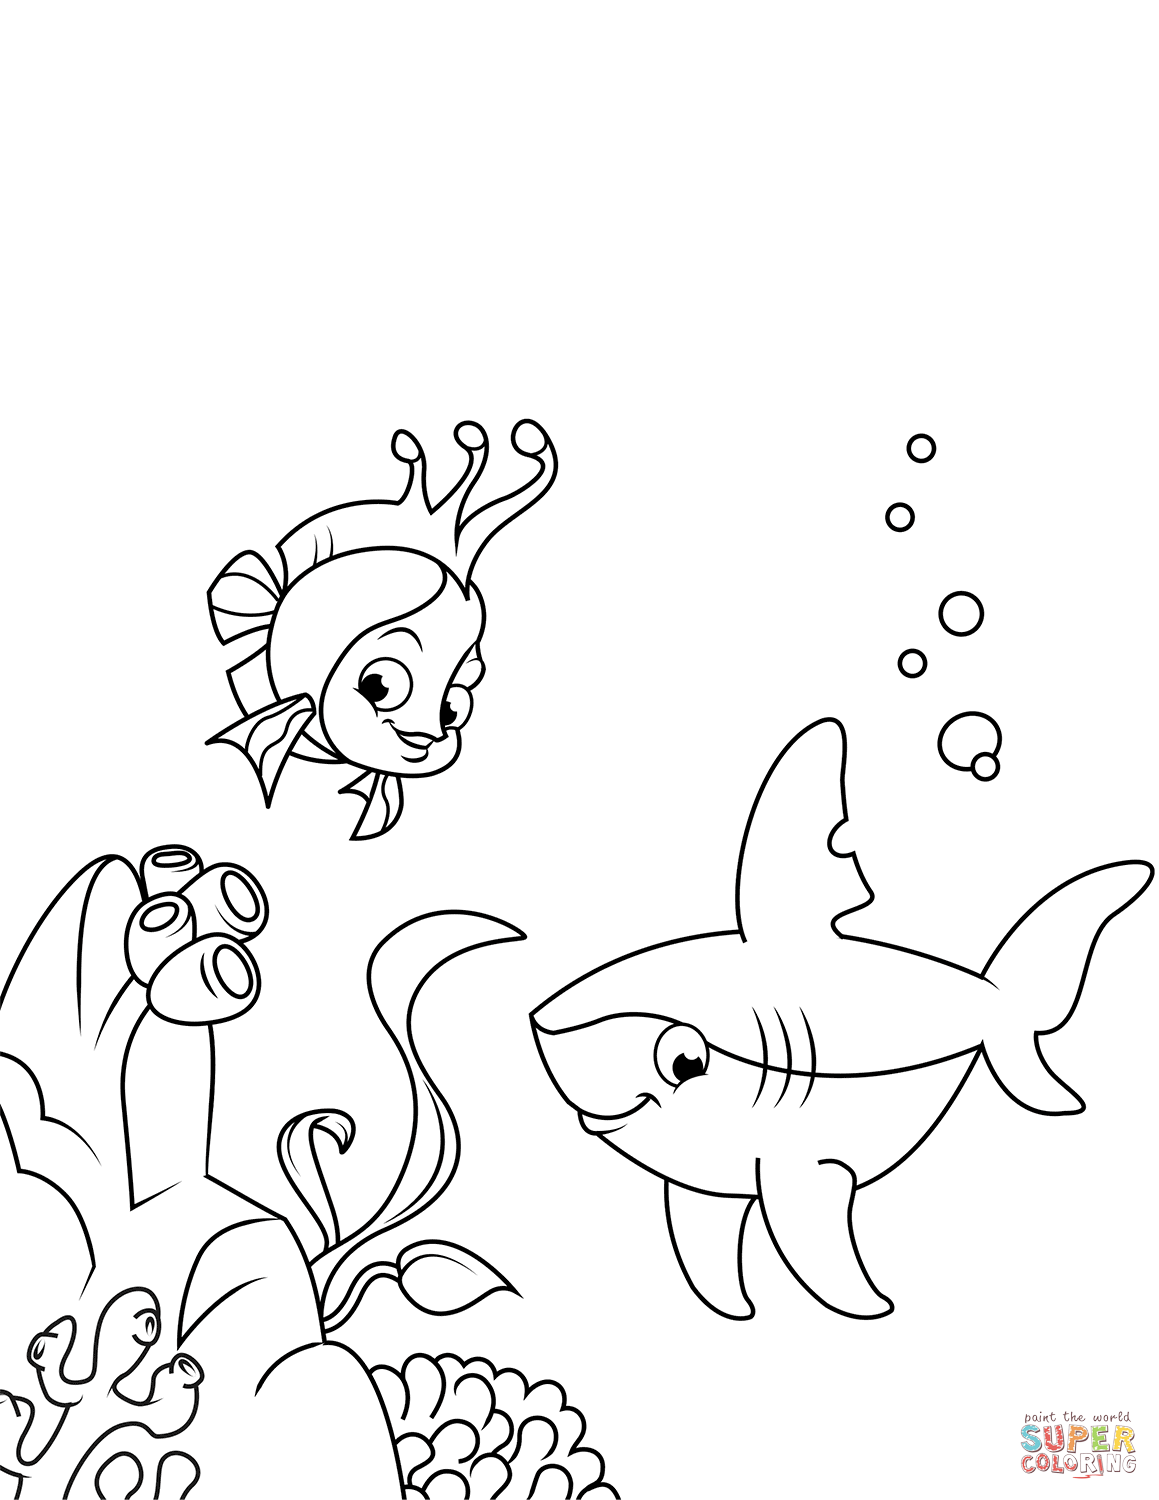 Cute Shark And Coral Reef Fish Coloring Page Free Printable